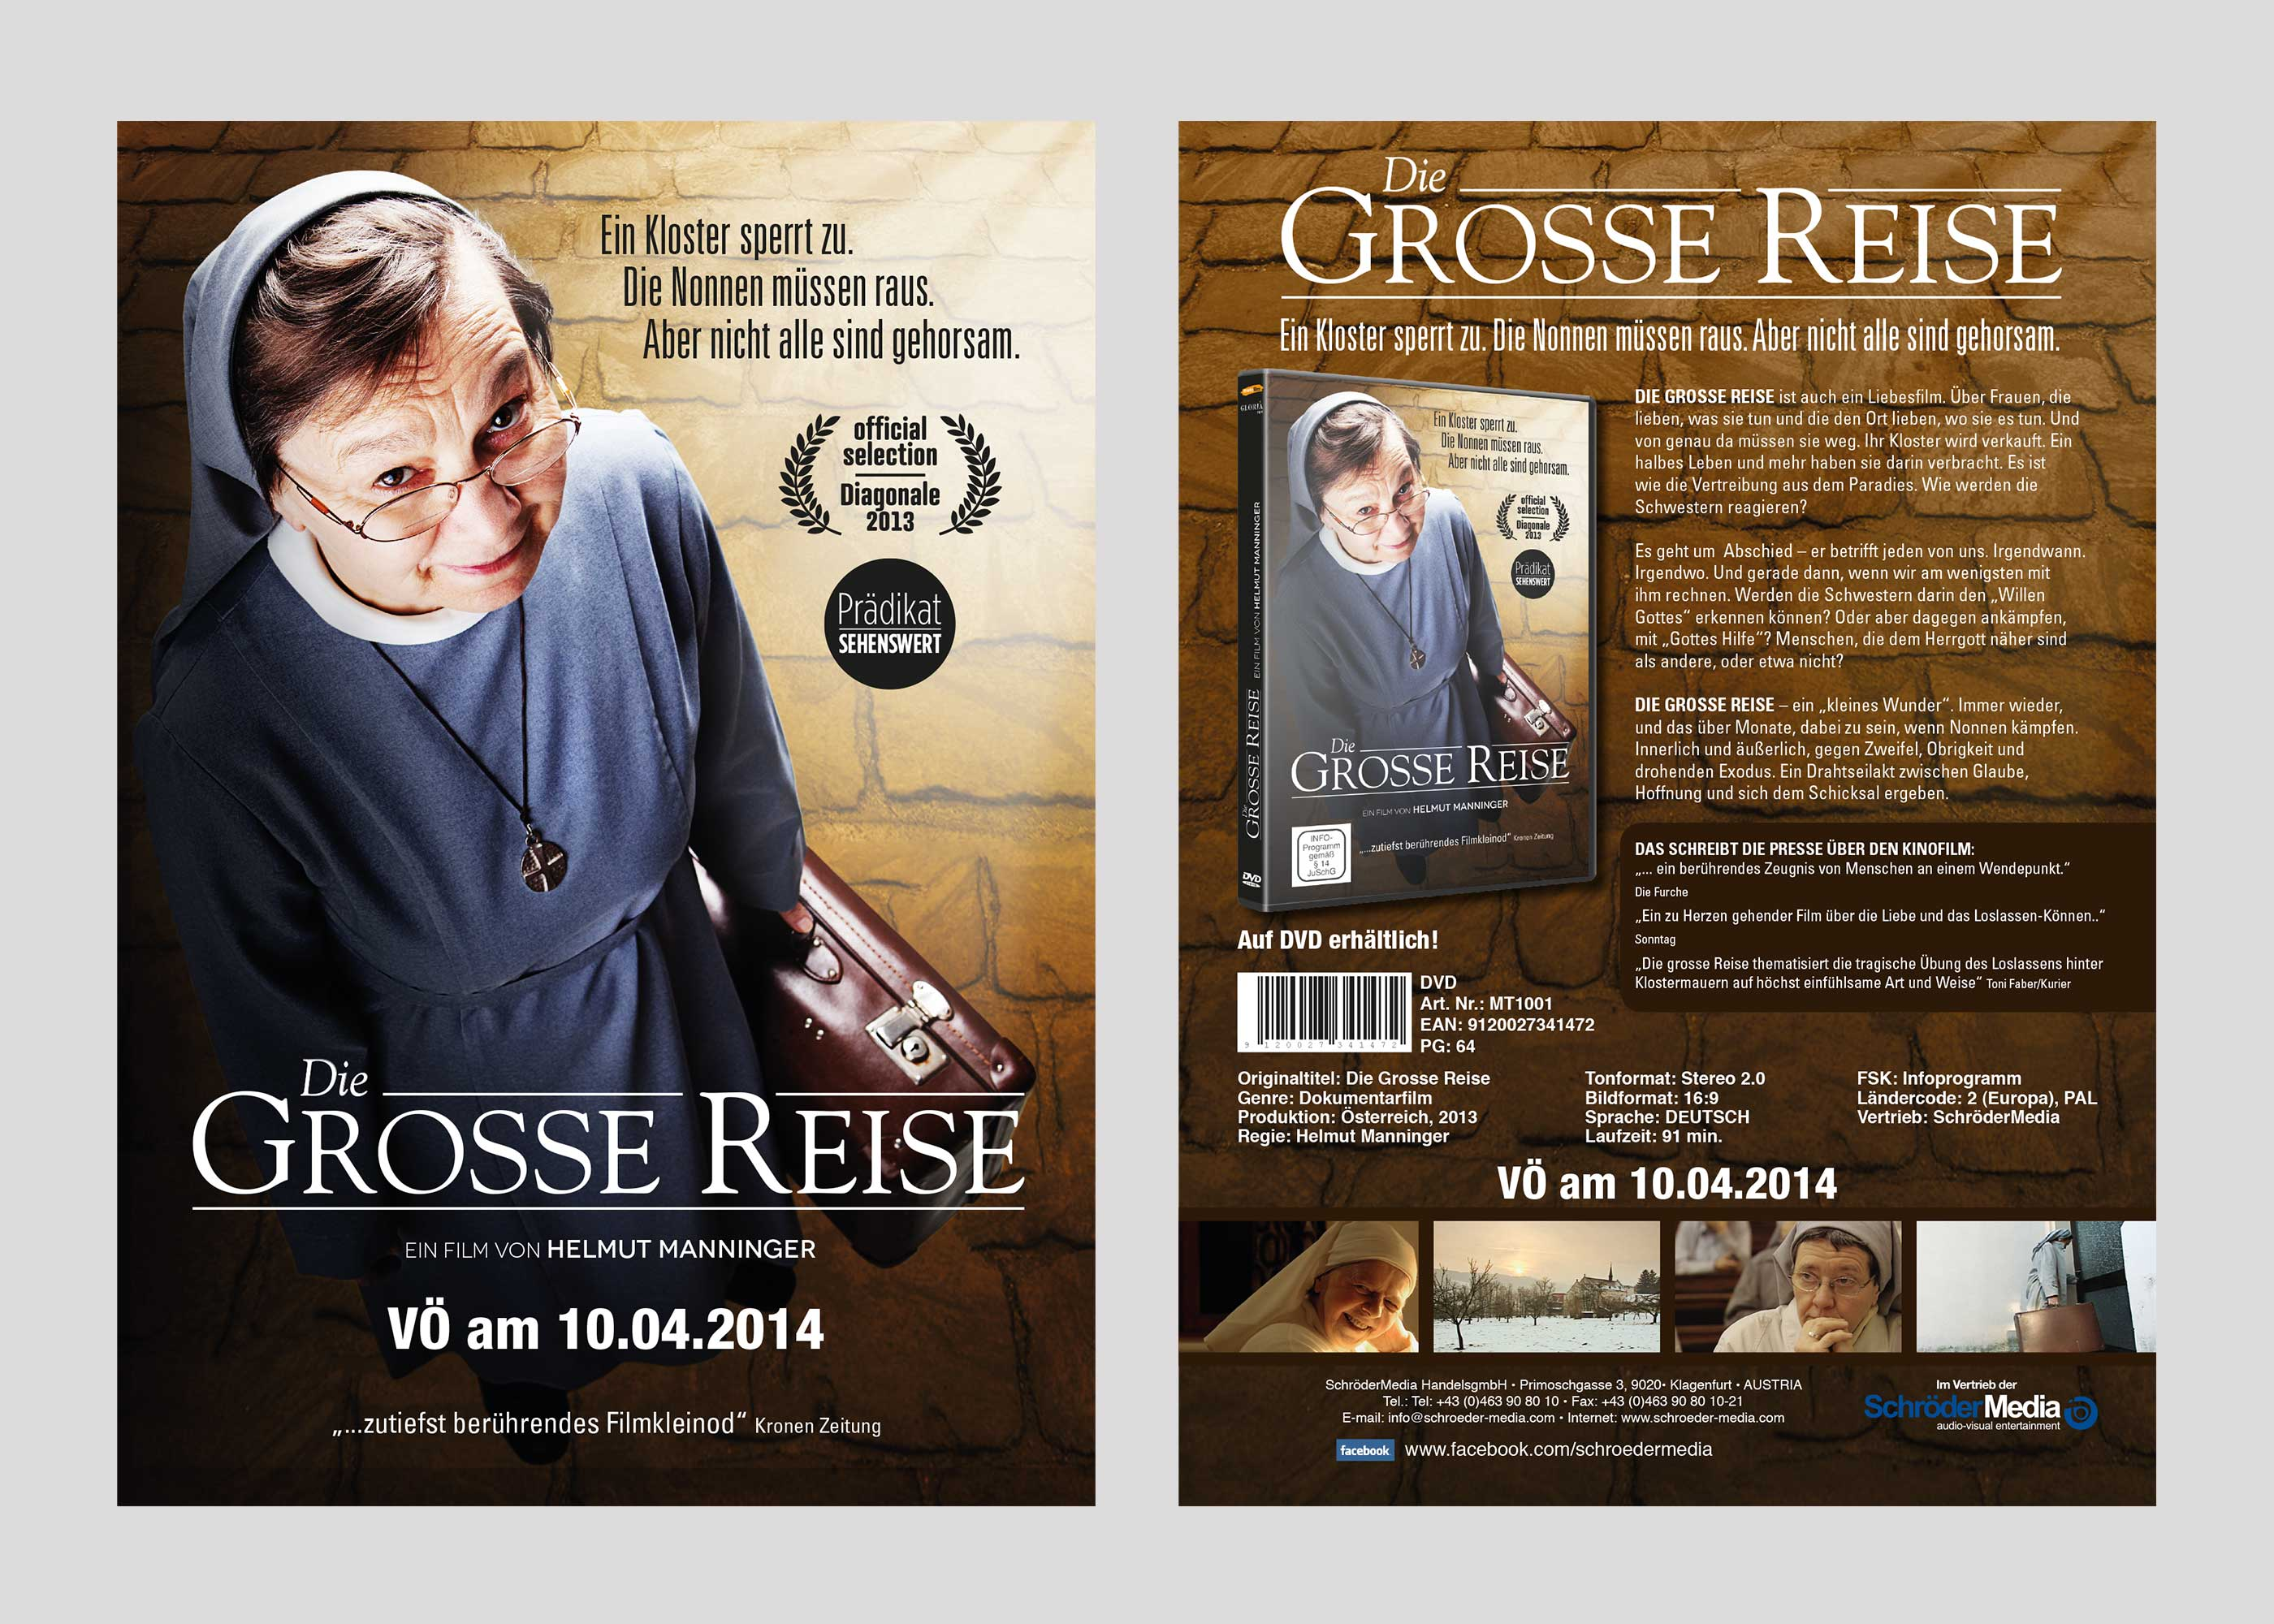 die-grosse-reise-metafilm-gloriafilm-sales-folder